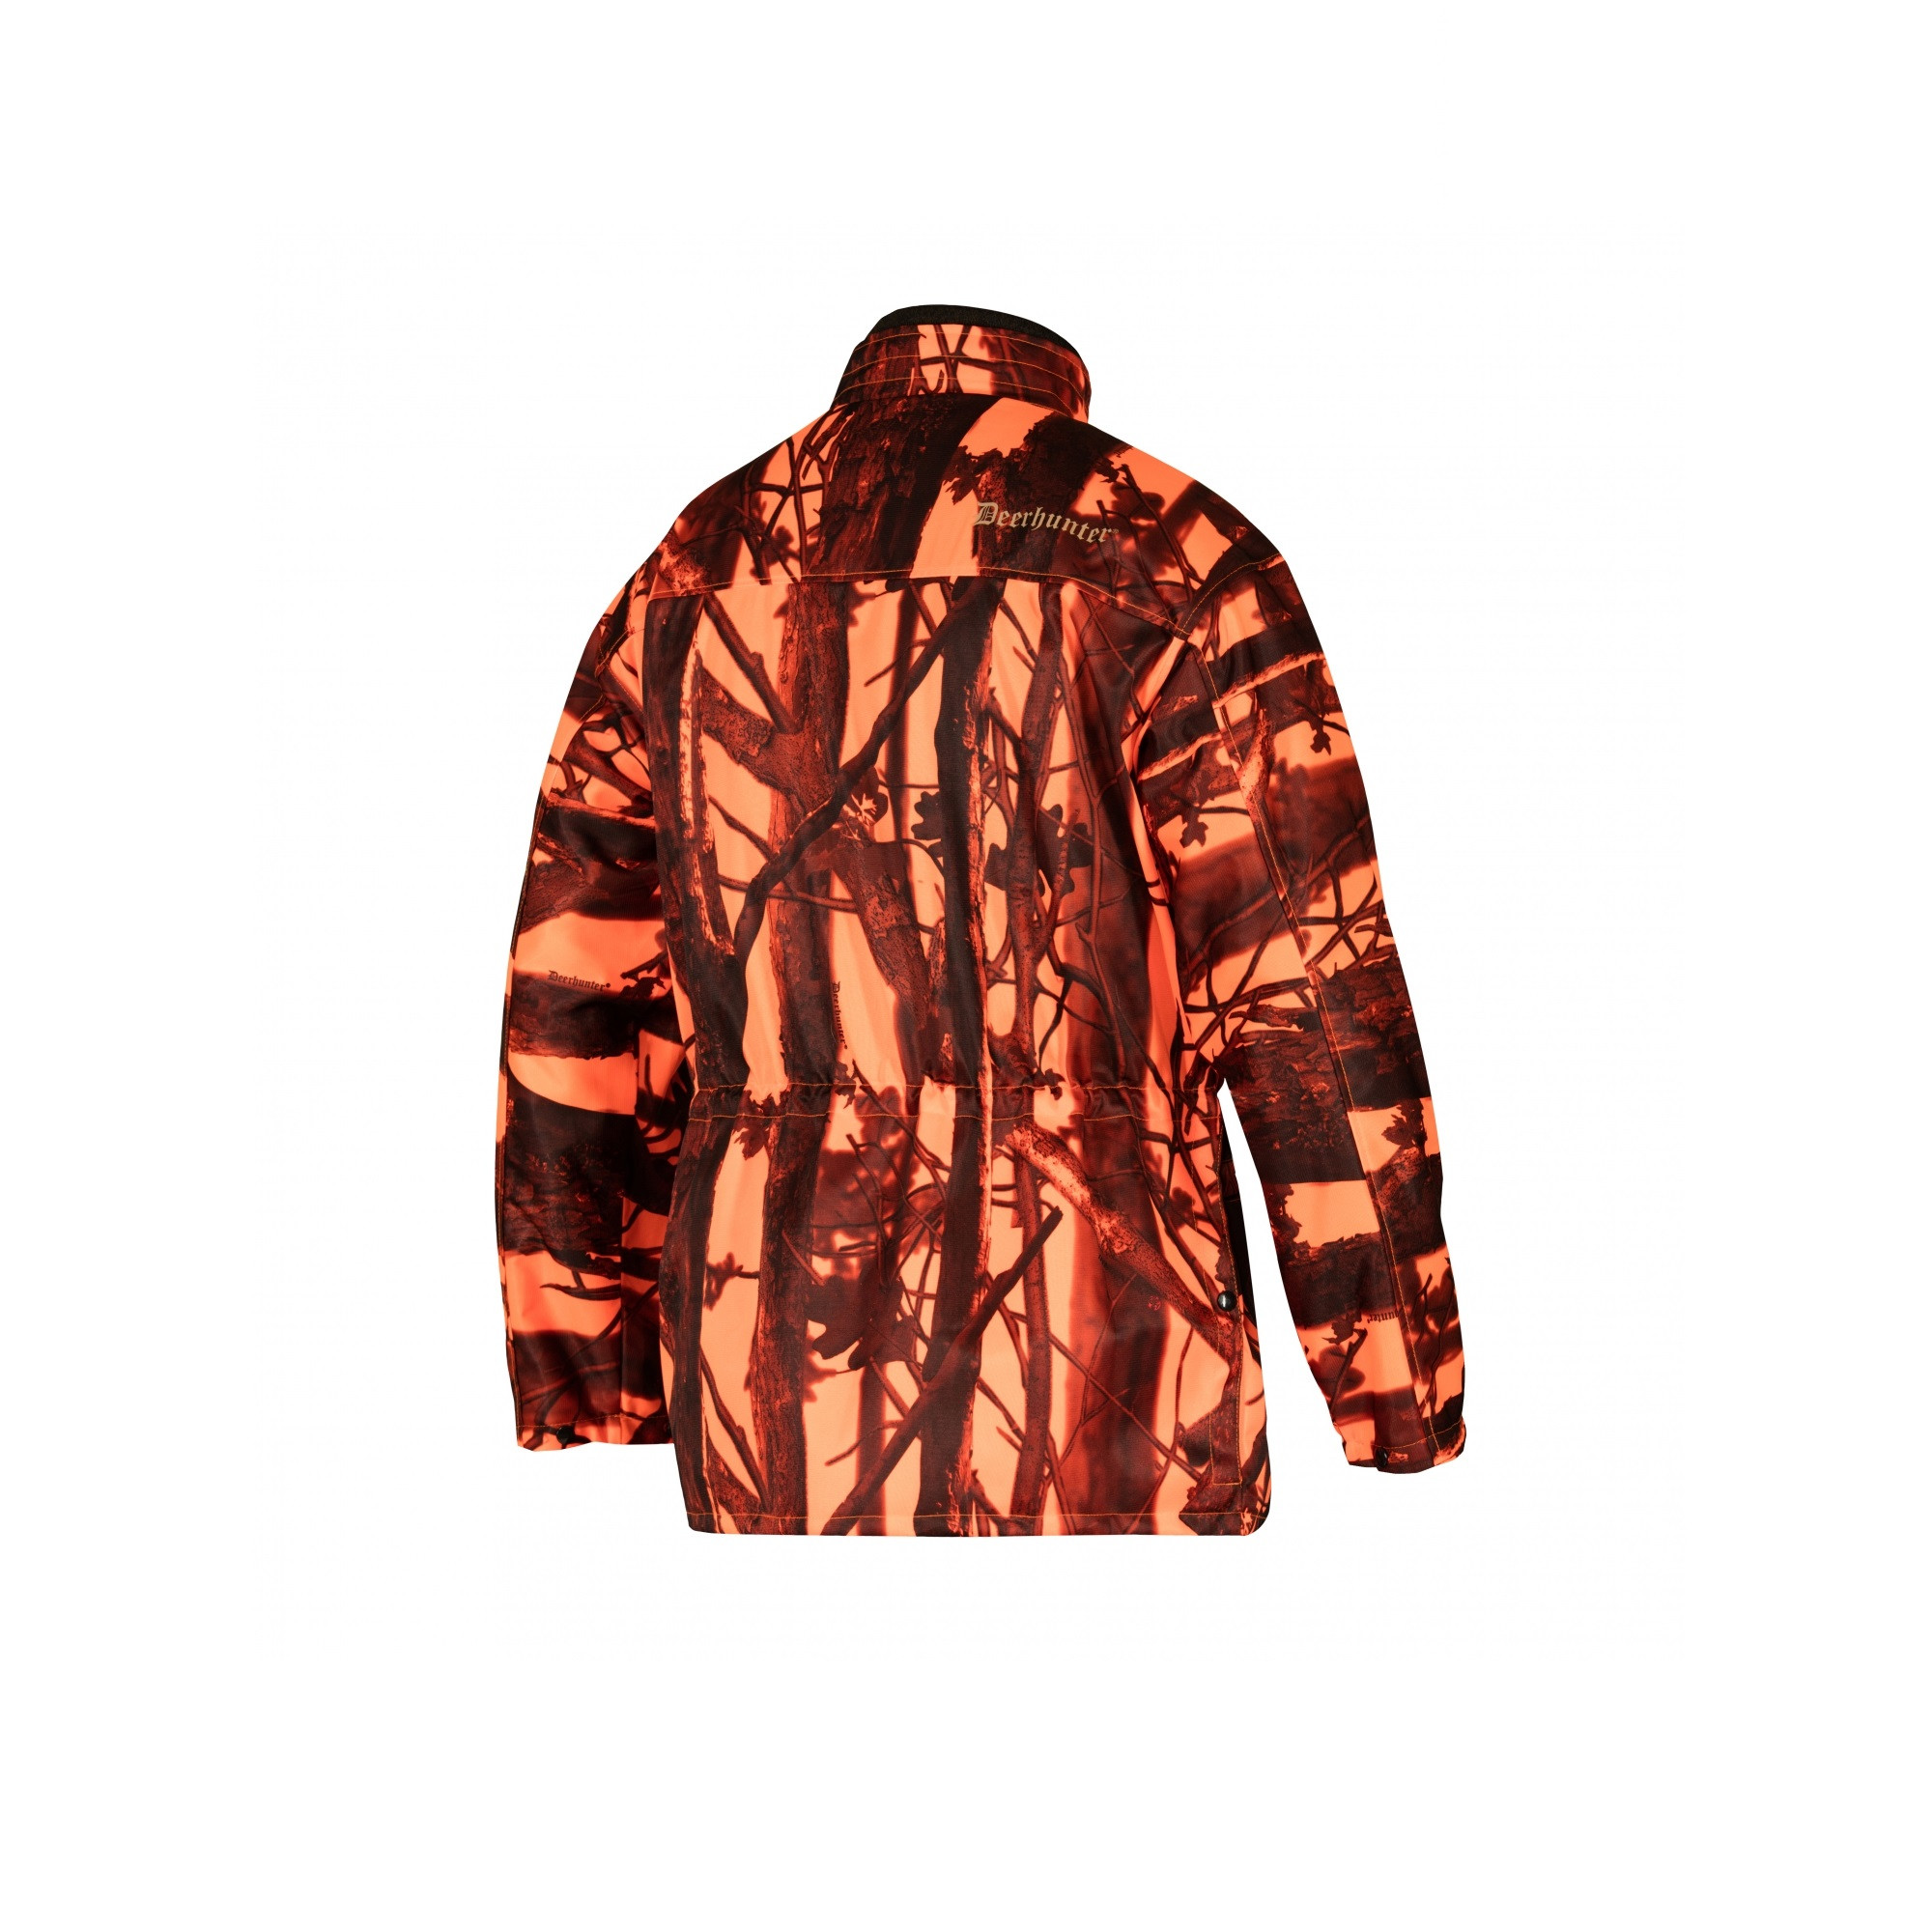 Vêtements de chasse Veste Protector Orange Deerhunter - 2